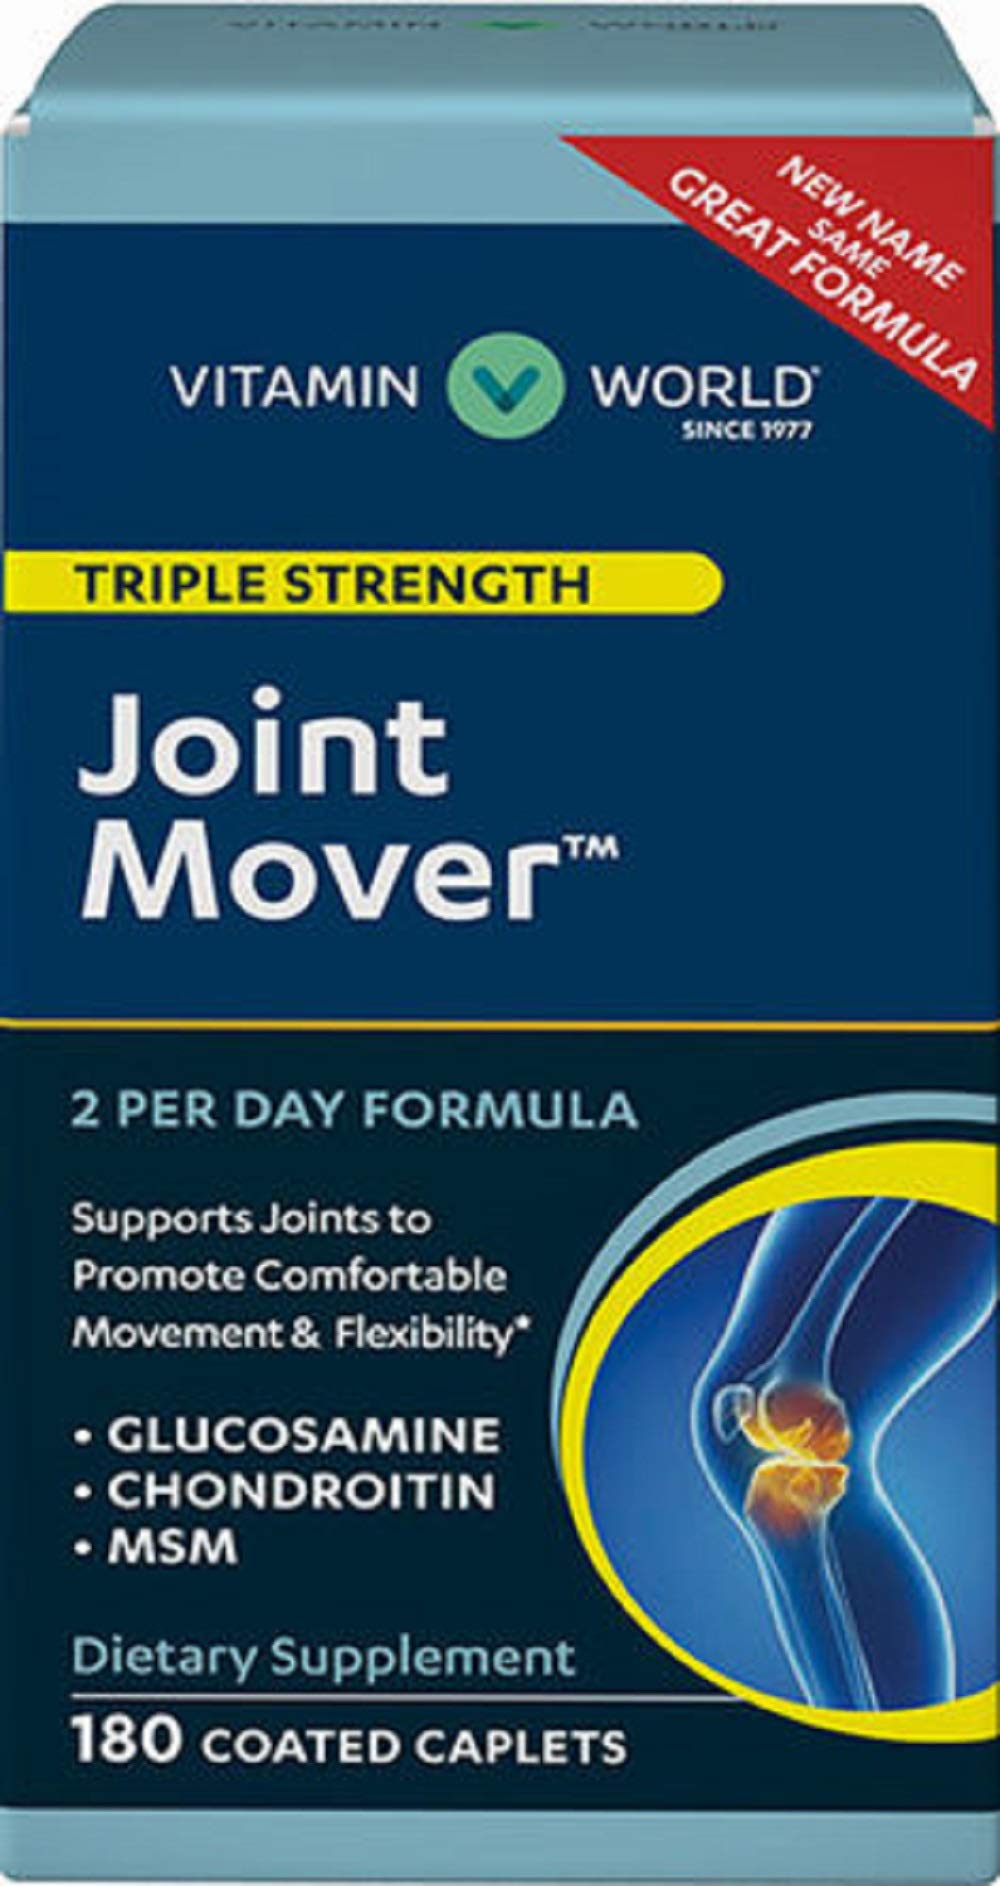 Vitamin World Advanced Triple Strength Joint Mover ®, 270 Caplets